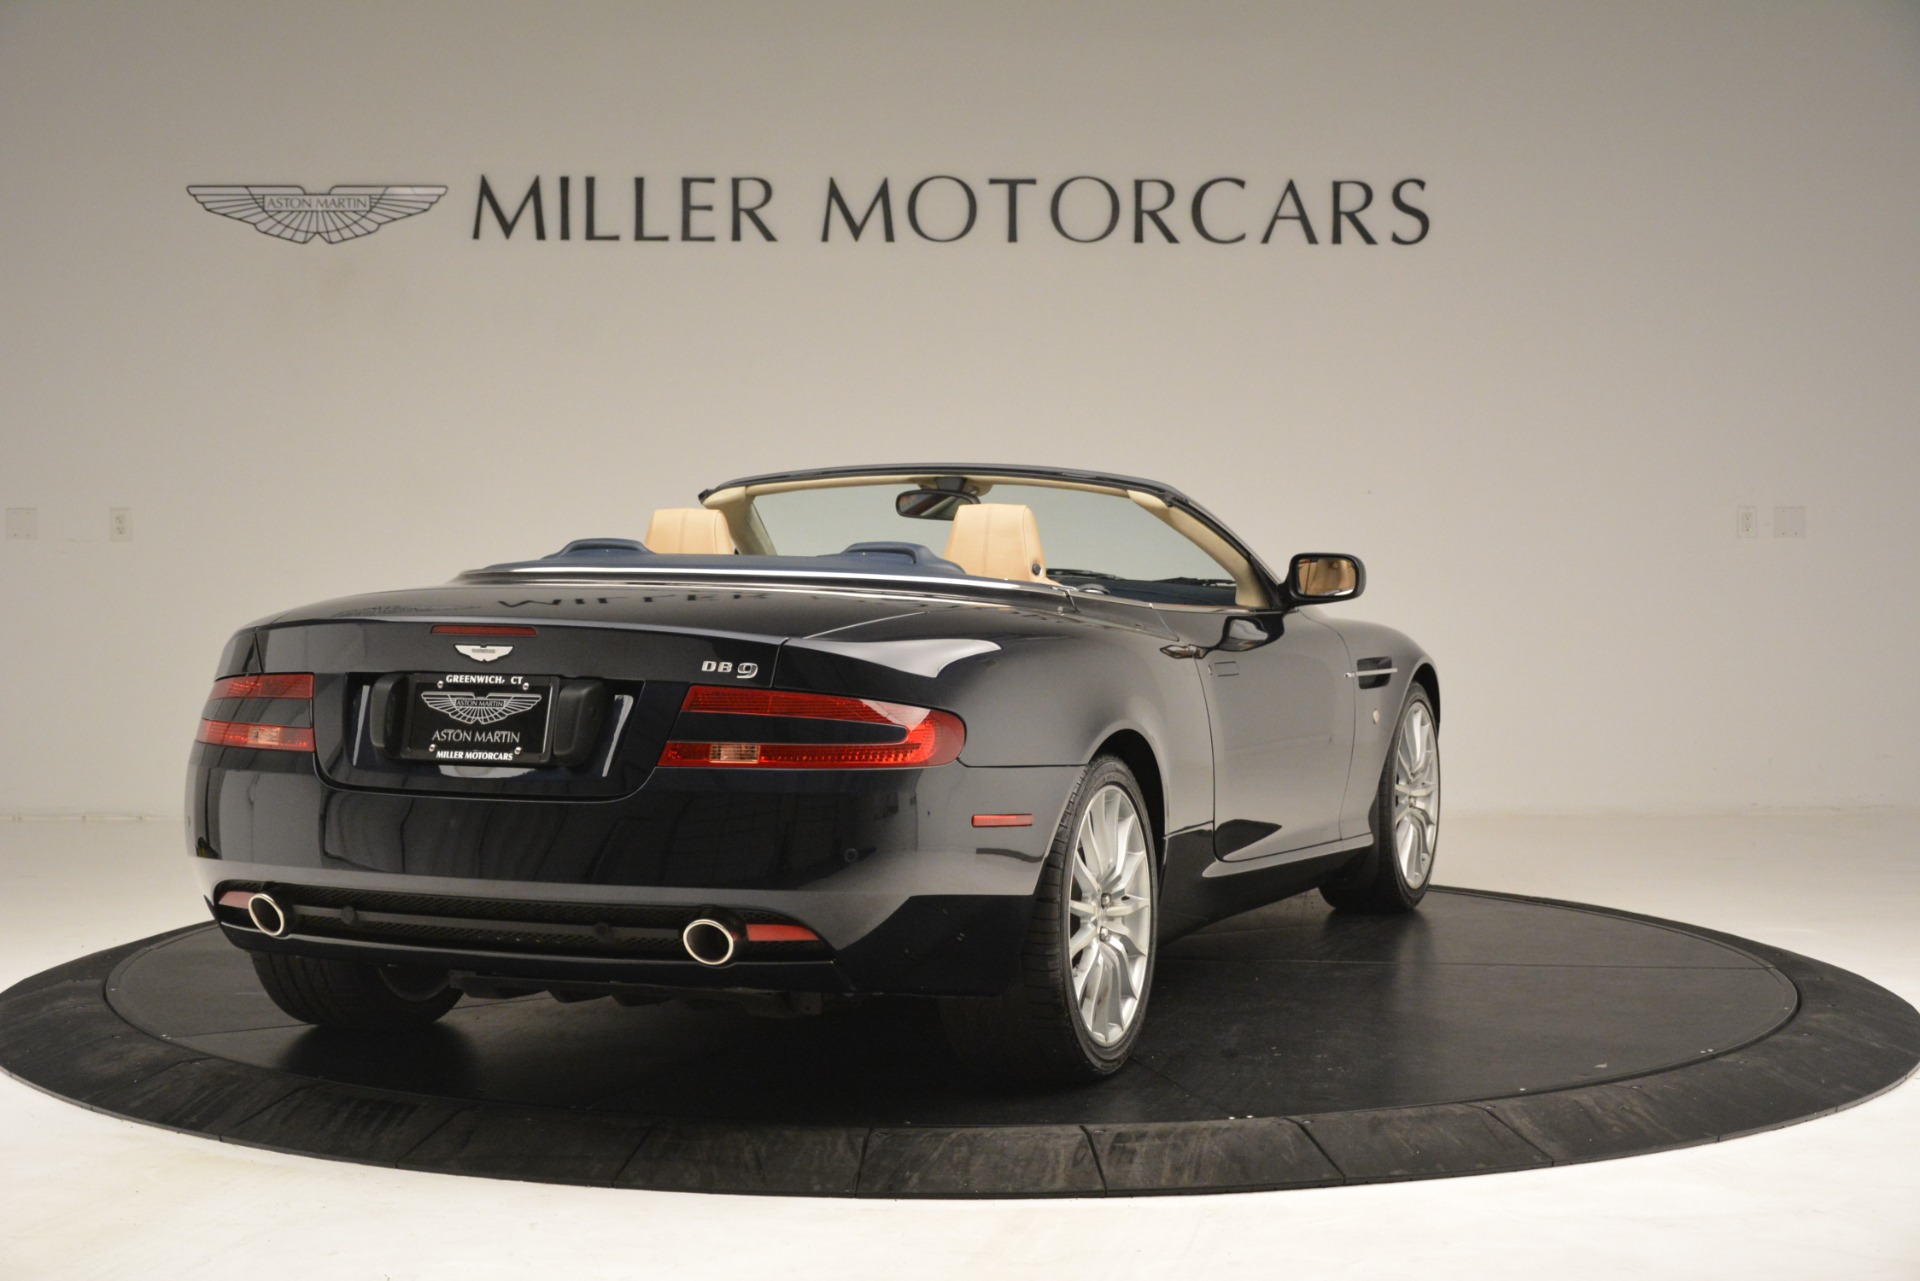 Used 2007 Aston Martin DB9 Convertible For Sale In Greenwich, CT 3291_p7